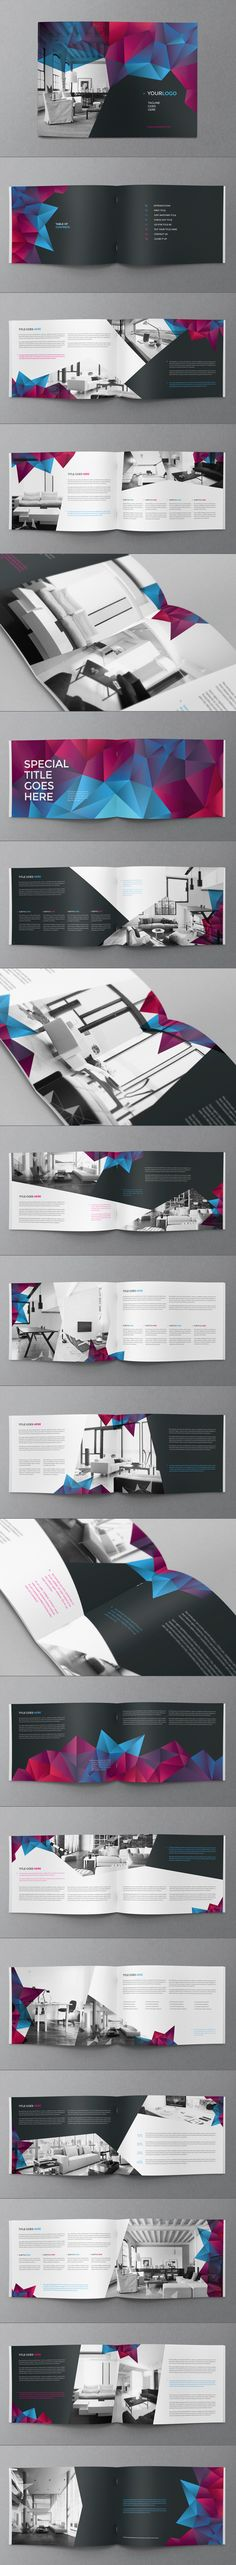 Buy Cool Modern Brochure by AbraDesign on GraphicRiver. COOL MODERN BROCHURE This brochure is an ideal way to showcase your business in an original way. Design Typo, Graphisches Design, Design Poster, Layout Design, Print Design, Logo Design, Modern Design, Interior Design, Design Brochure